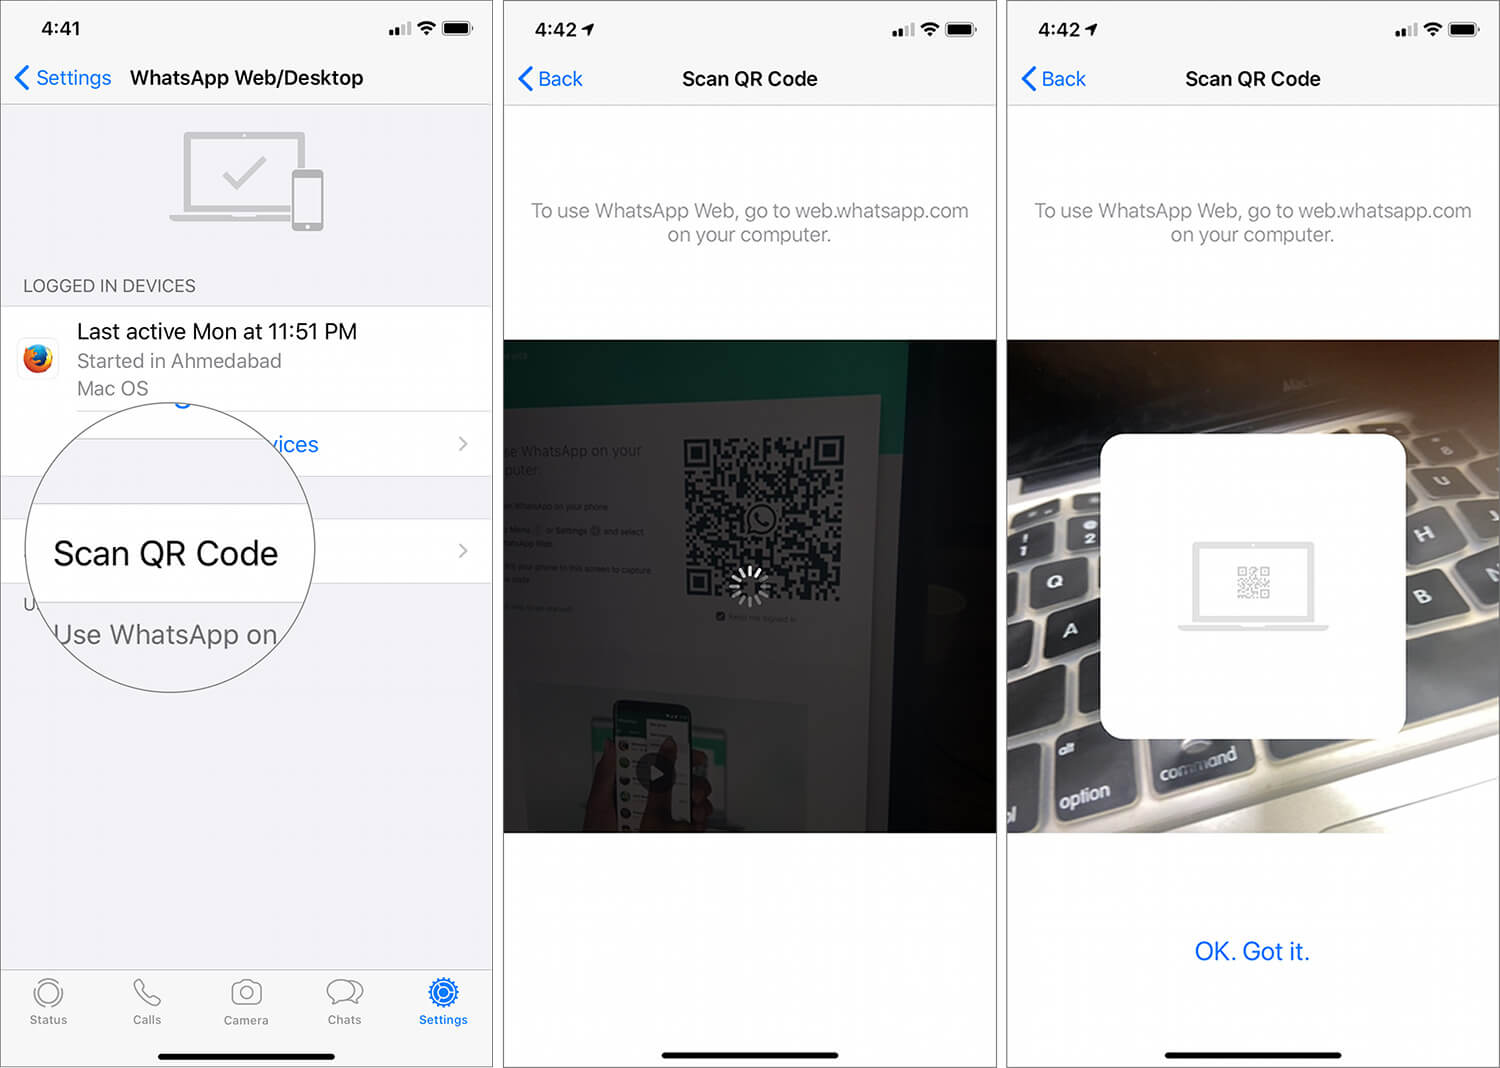 Tap on Scan QR Code on iPhone then scan the QR code on your iPad